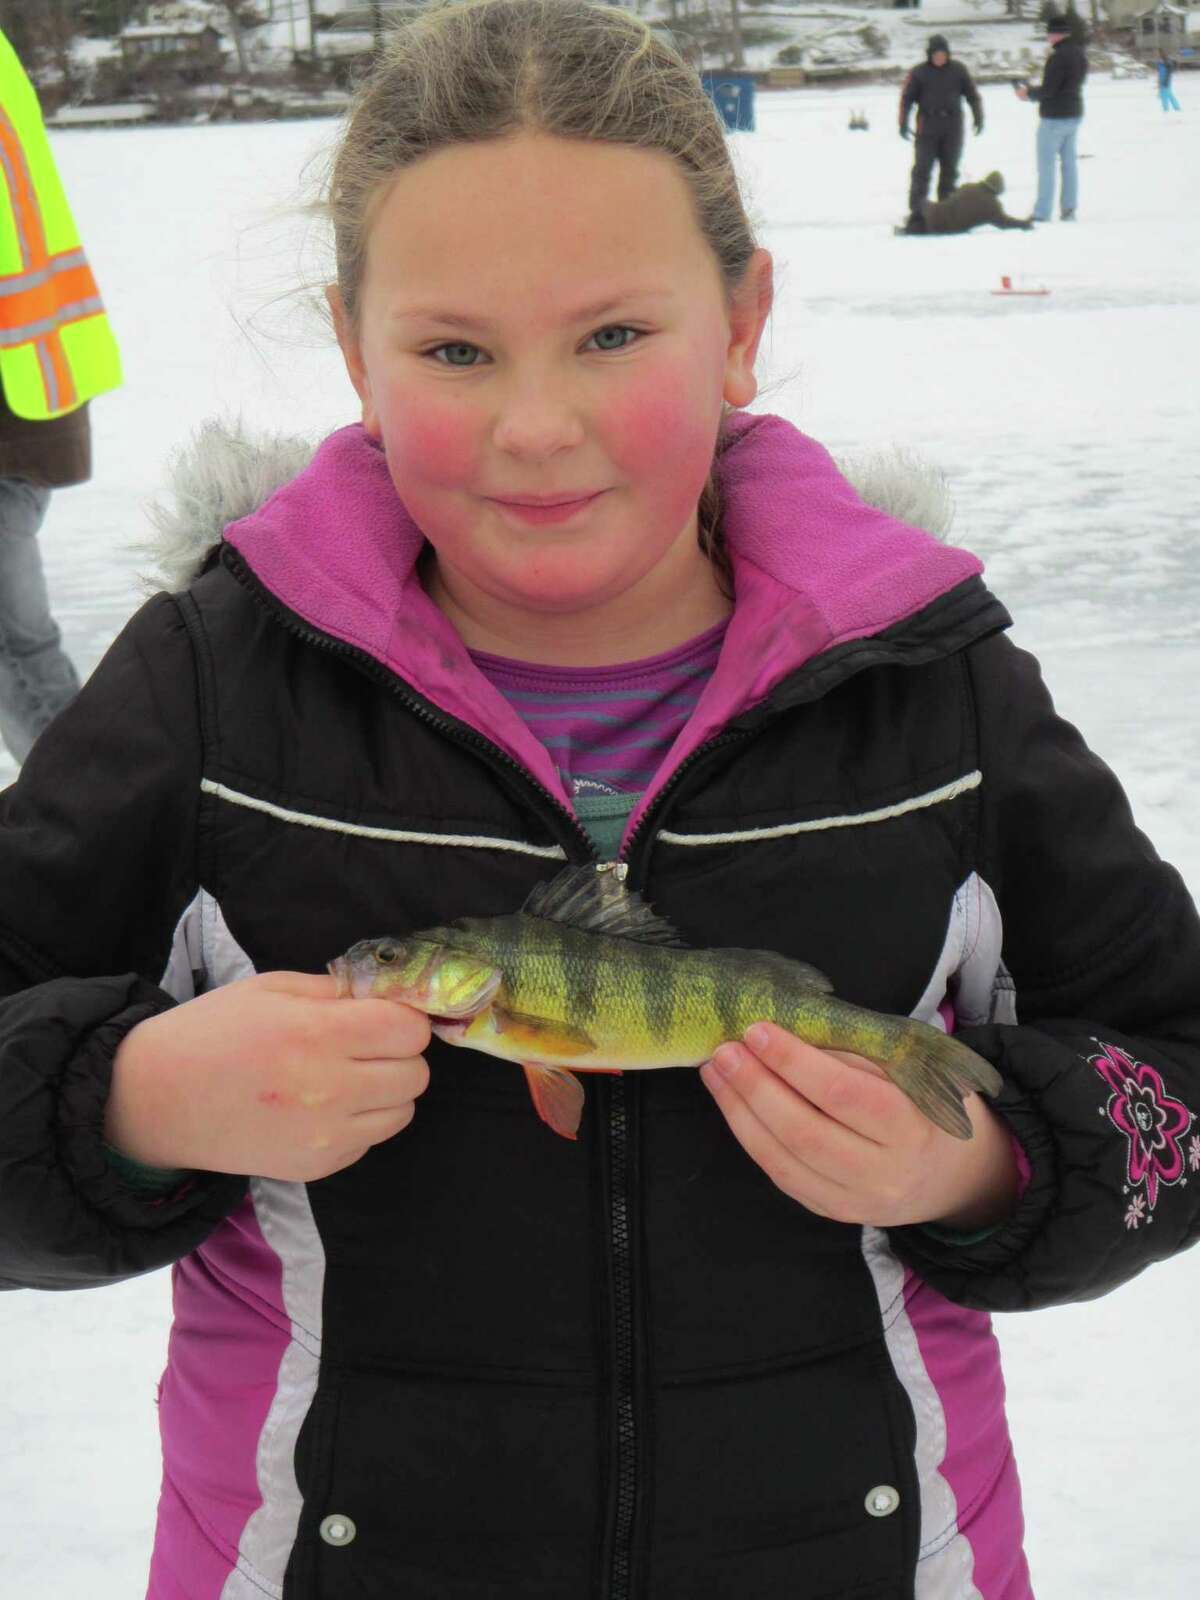 A rosy-cheeked ice angler shows off what she caught during an ice fishing event held by Connecticut's Department of Energy and Environmental Protection.